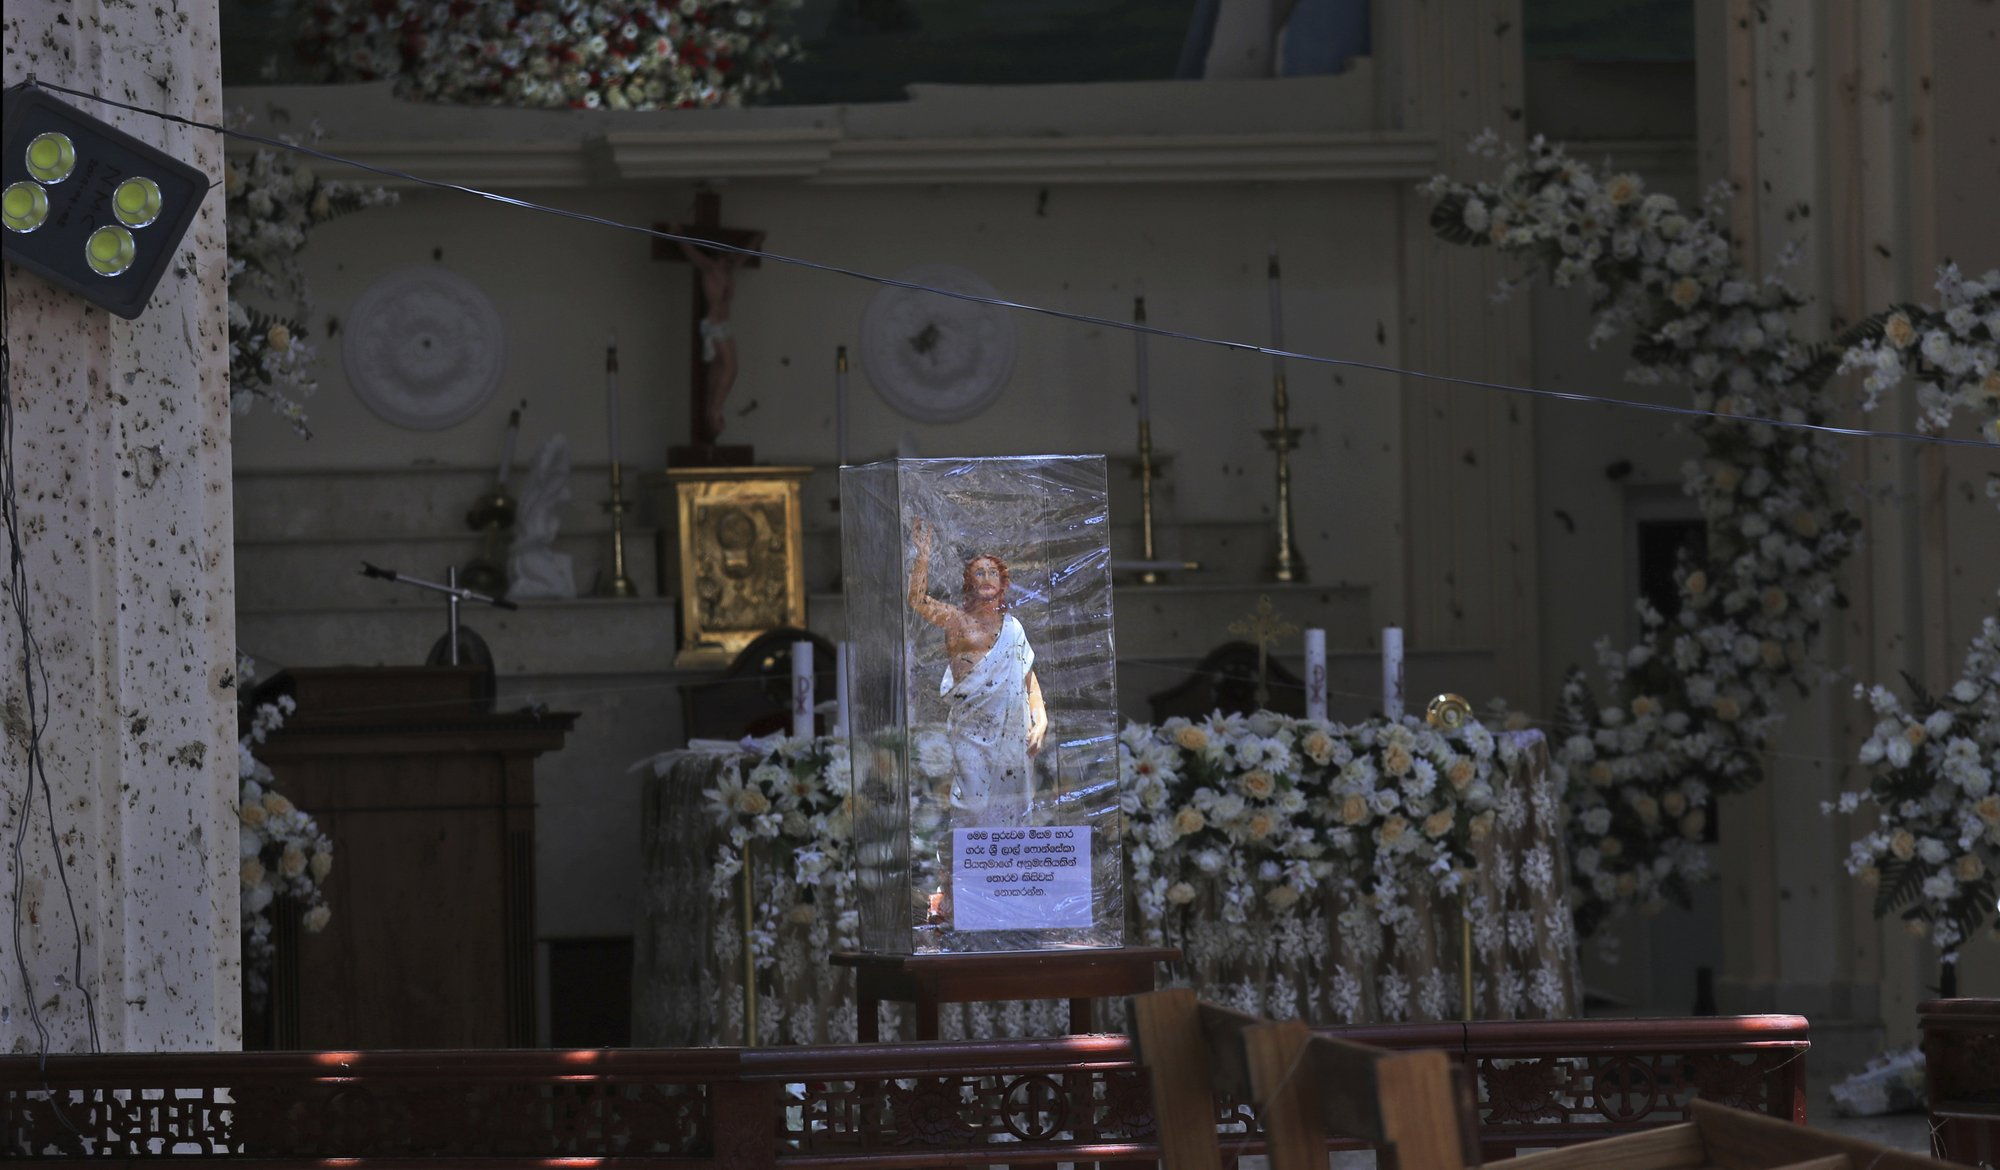 In this Thursday, April 25, 2019 photo, a statue of Jesus Christ stands on the altar of St. Sebastian's Church in Negombo, north of Colombo, Sri Lanka. Nearly a week later, the smell of death is everywhere, though the bodies are long gone. Yet somehow, there's a beauty to St. Sebastian's, a neighborhood church in a Catholic enclave north of Sri Lanka's capital, where a man calmly walked in during Easter services with a heavy backpack and blew himself up. There is beauty in the little statues that refused to fall over, and despite the swarms of police and soldiers who seem to be everywhere now in the streets of the seaside town of Negombo. (AP Photo/Manish Swarup)